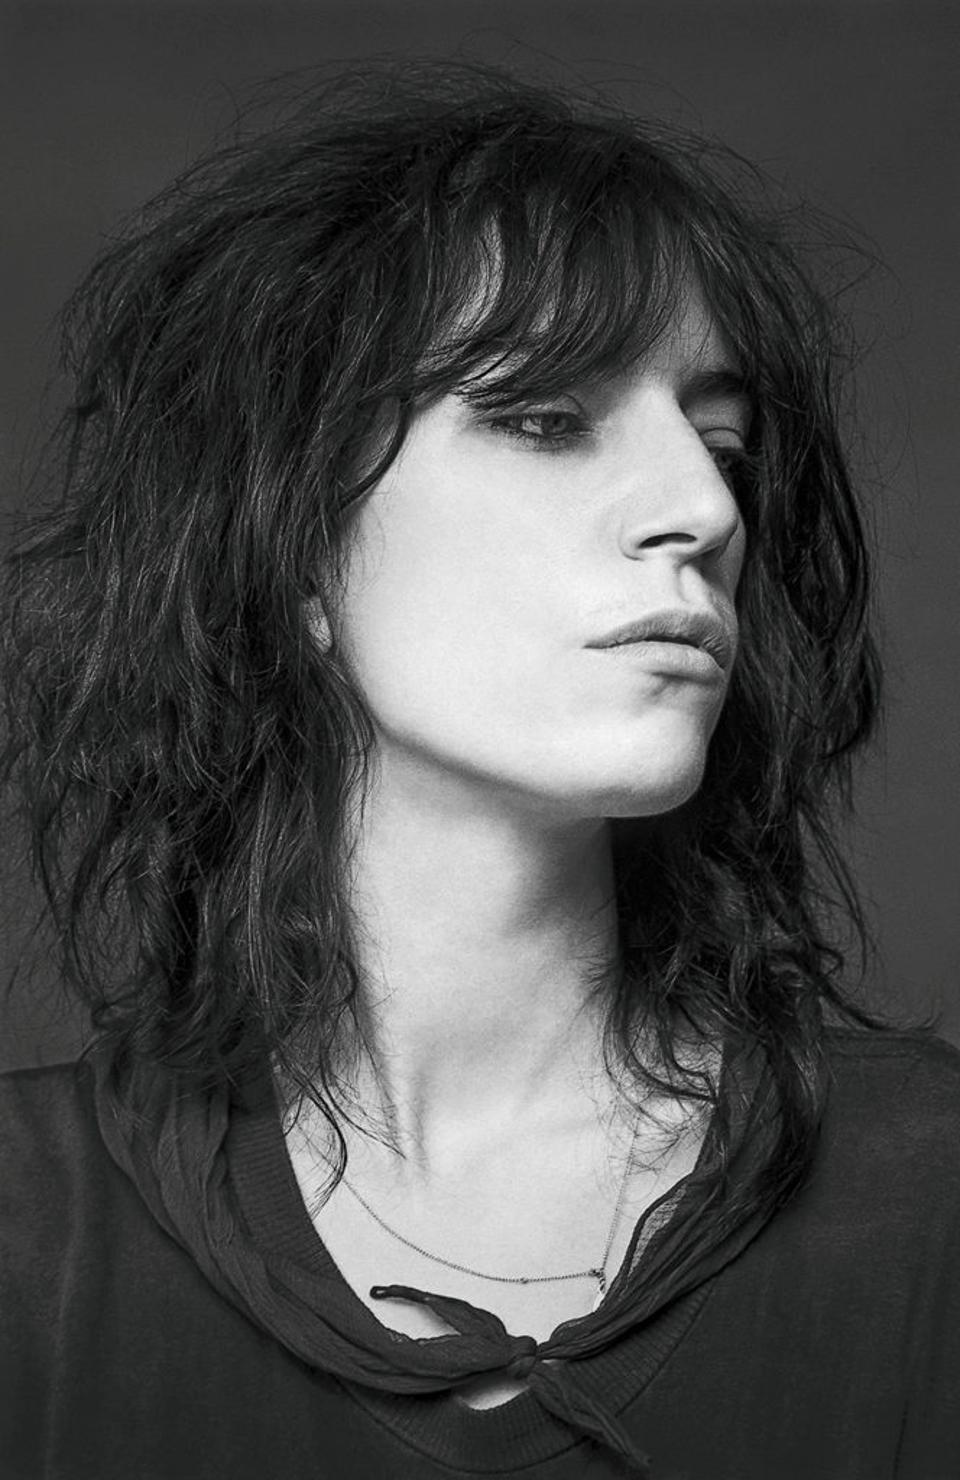 A New Book Shows Patti Smith As She's Never Been Seen Before